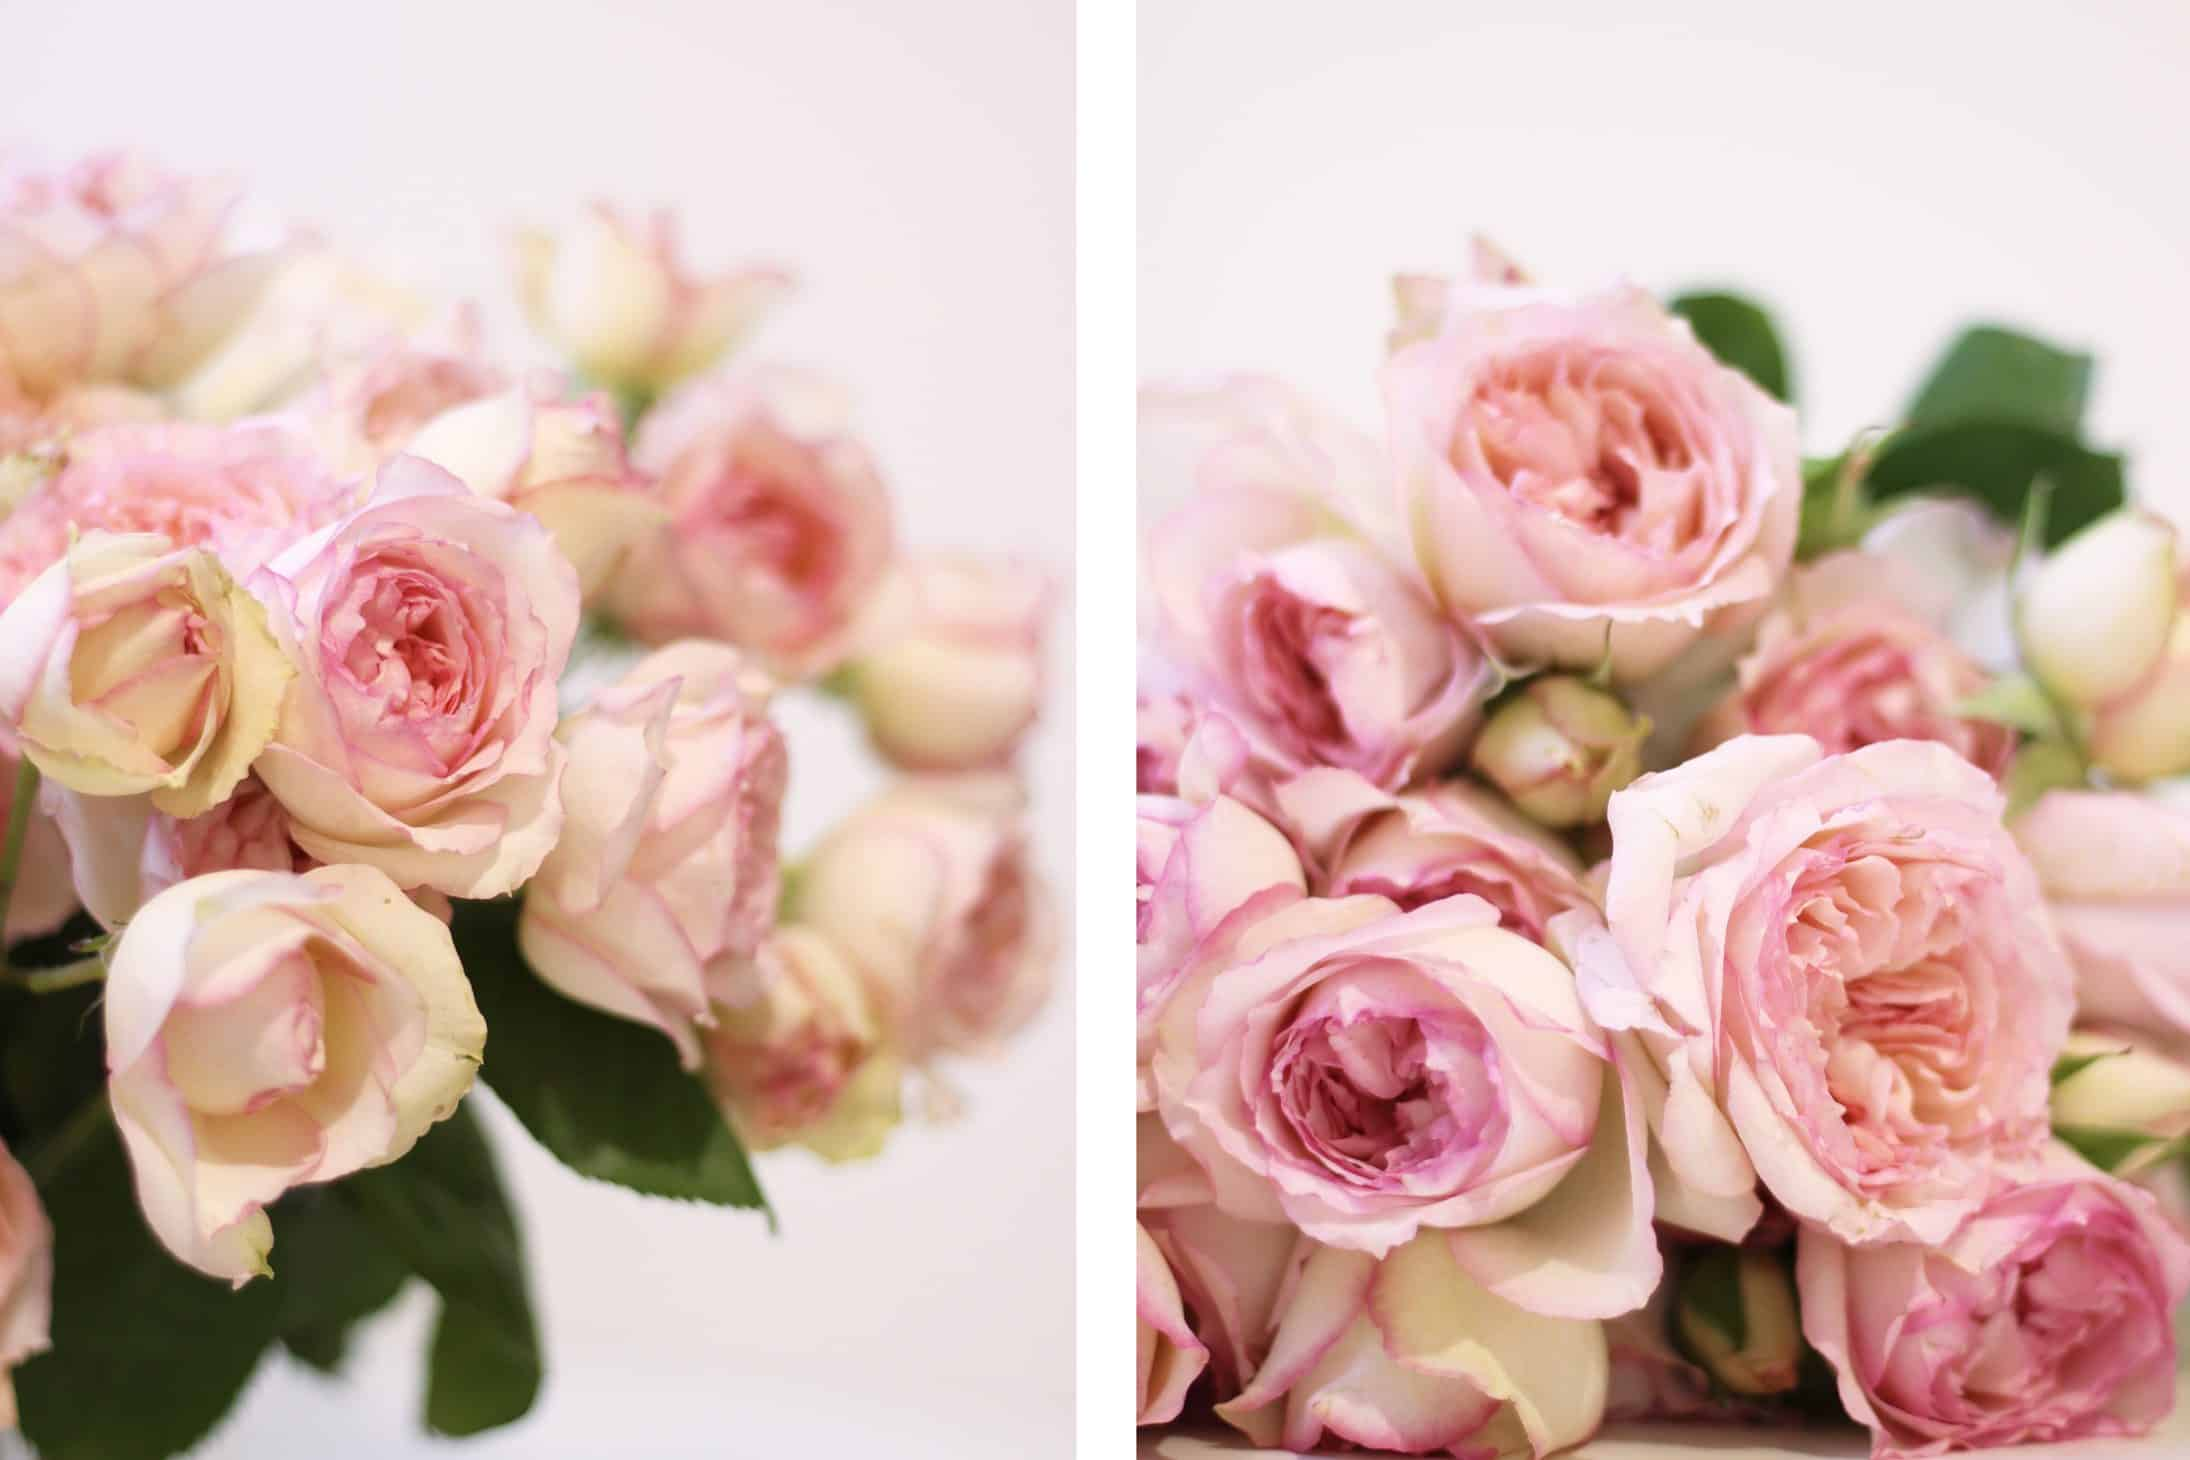 Love Garden Roses: Why I Love Rose Carmeline (And You Should, Too!)